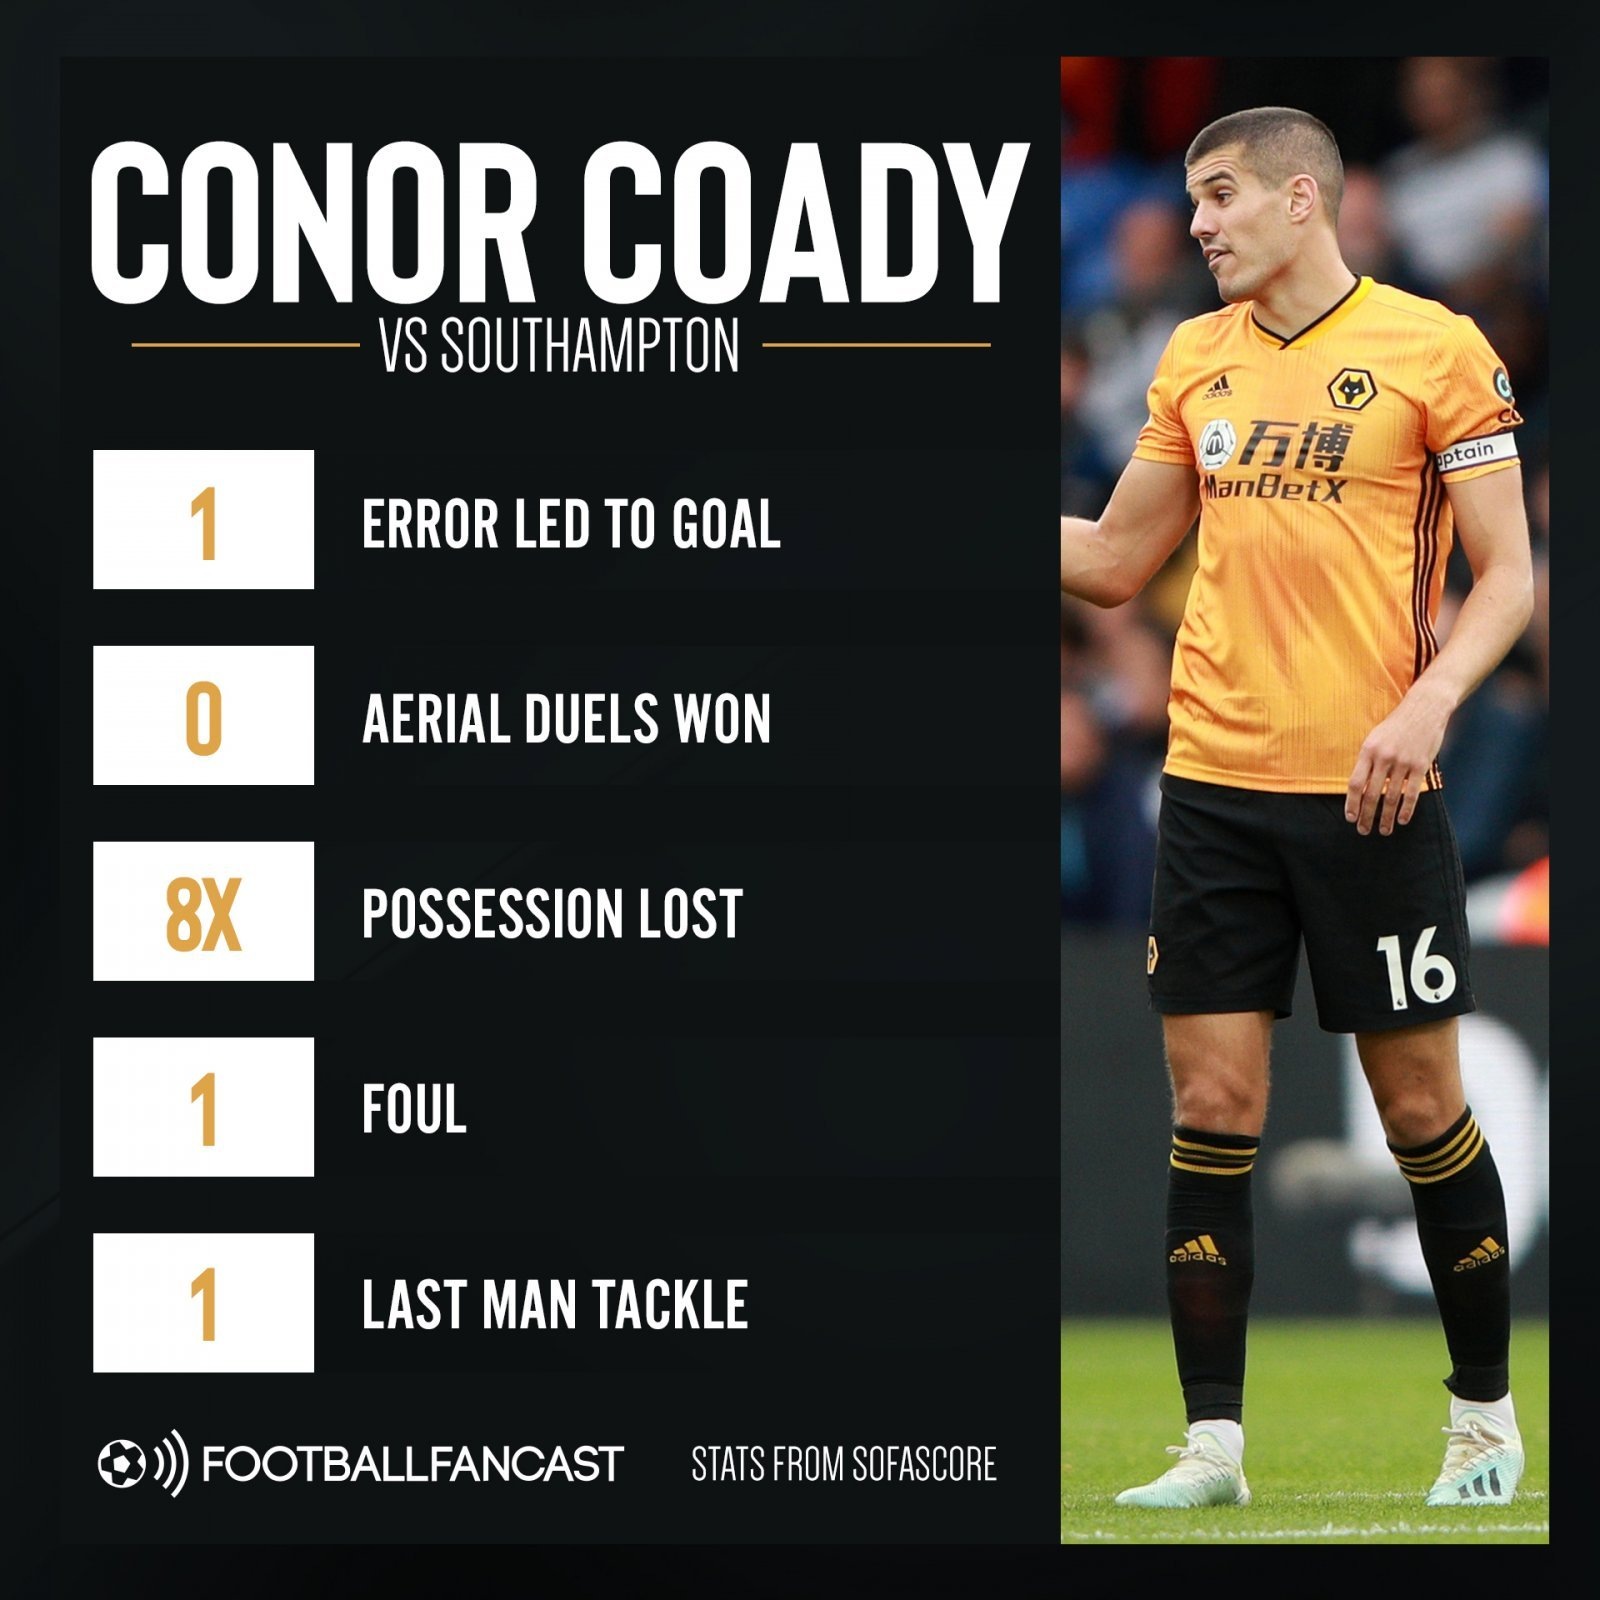 Conor Coady vs Southampton - Wolves scapegoat Vallejo undeserving of criticism when key figure is faring worse - opinion